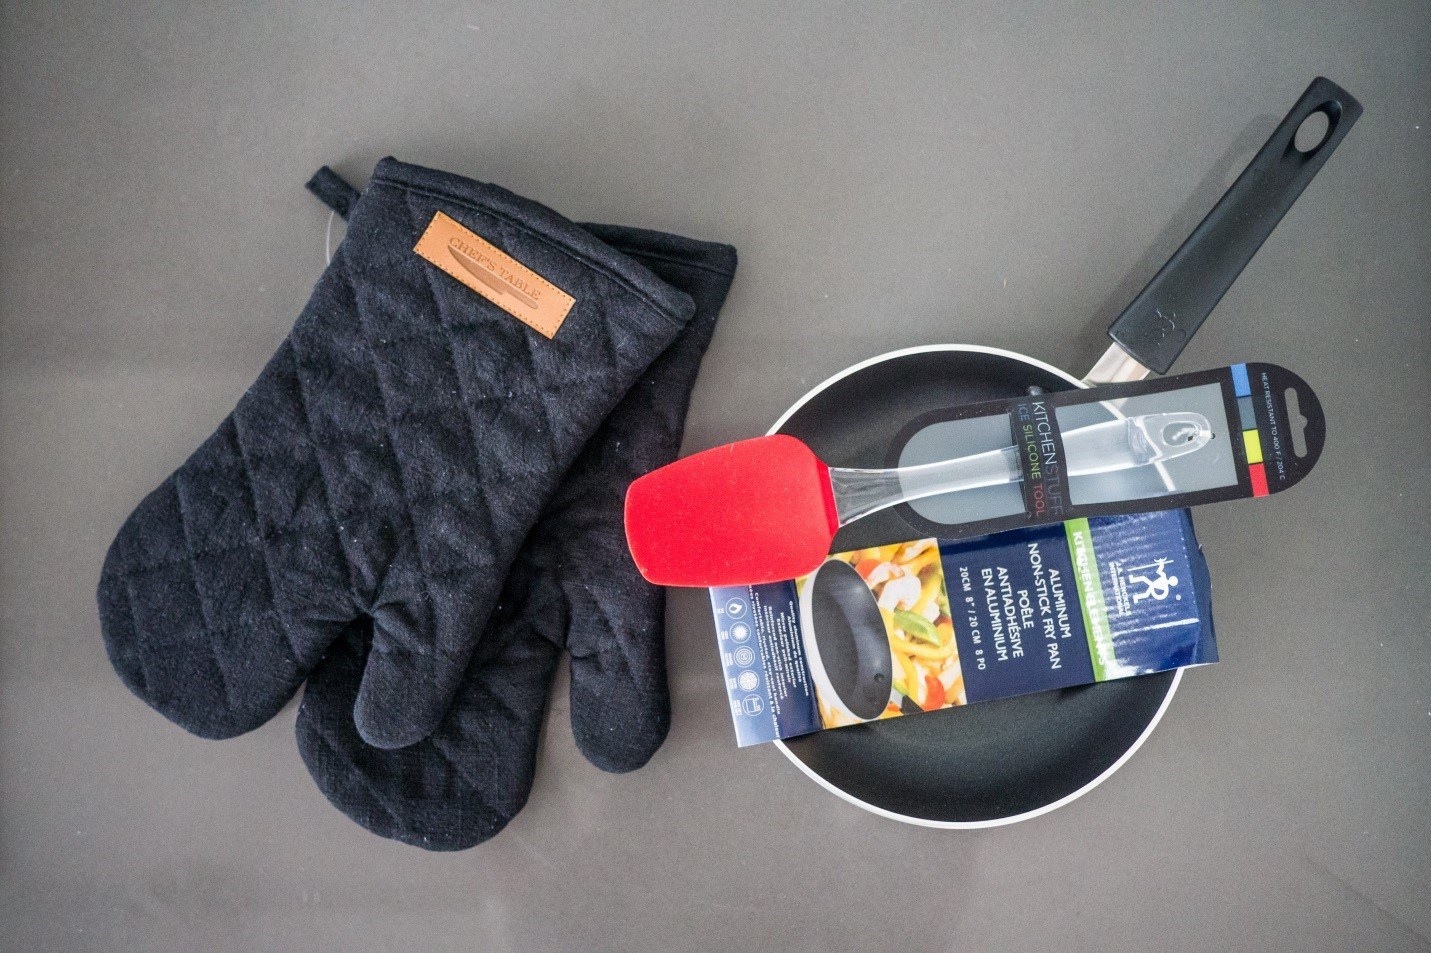 dorm room cooking pans and mitts